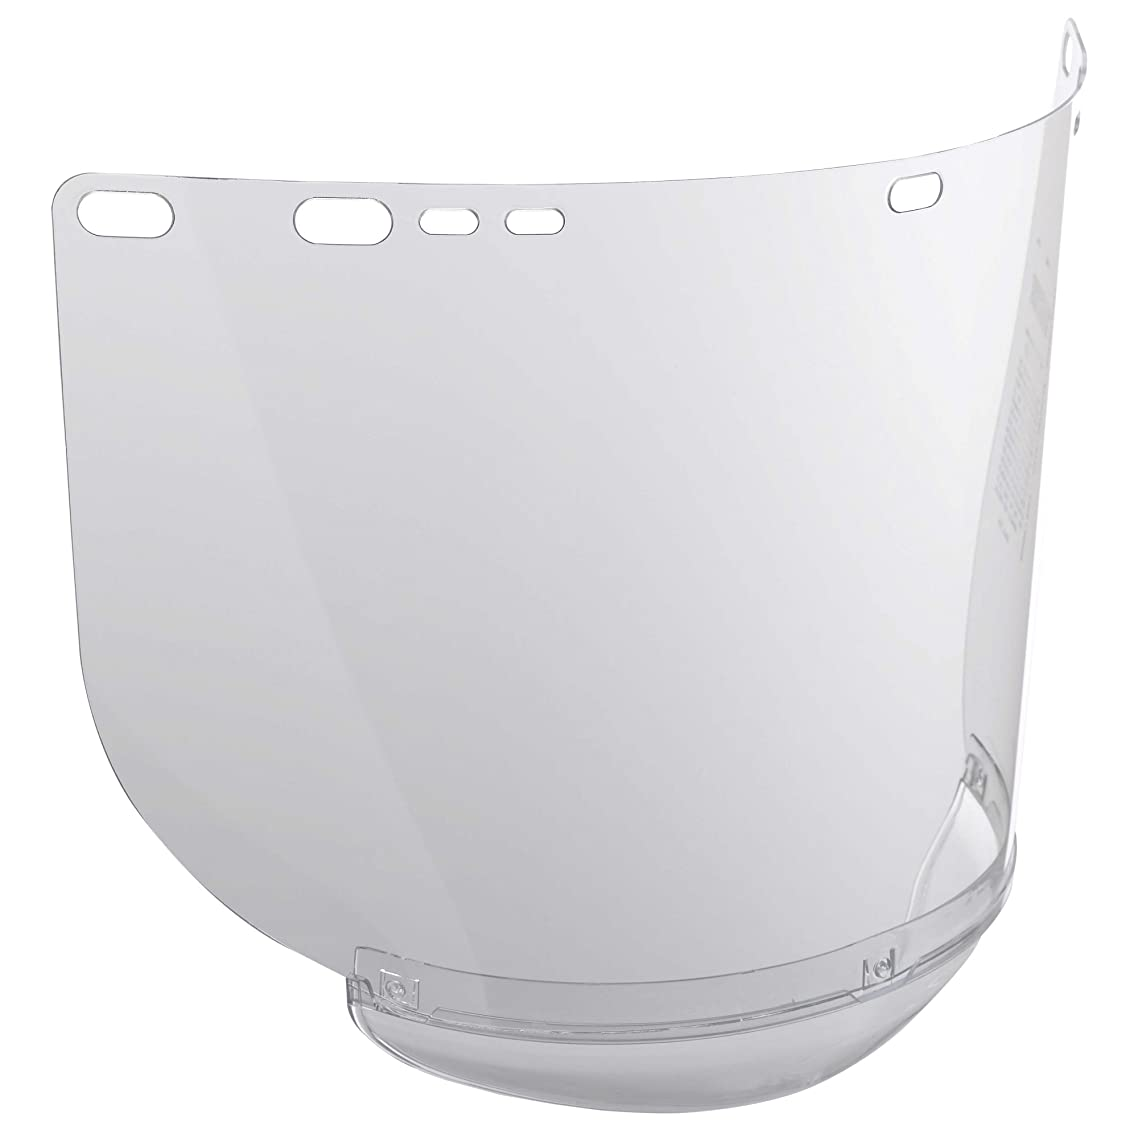 """Jackson Safety F20 High Impact Face Shield (29062), Polycarbonate, 8"""" x 15.5"""" x 0.04"""", Clear, Face Protection, Unbound, 12 Shields / Case oniioqph72313346"""